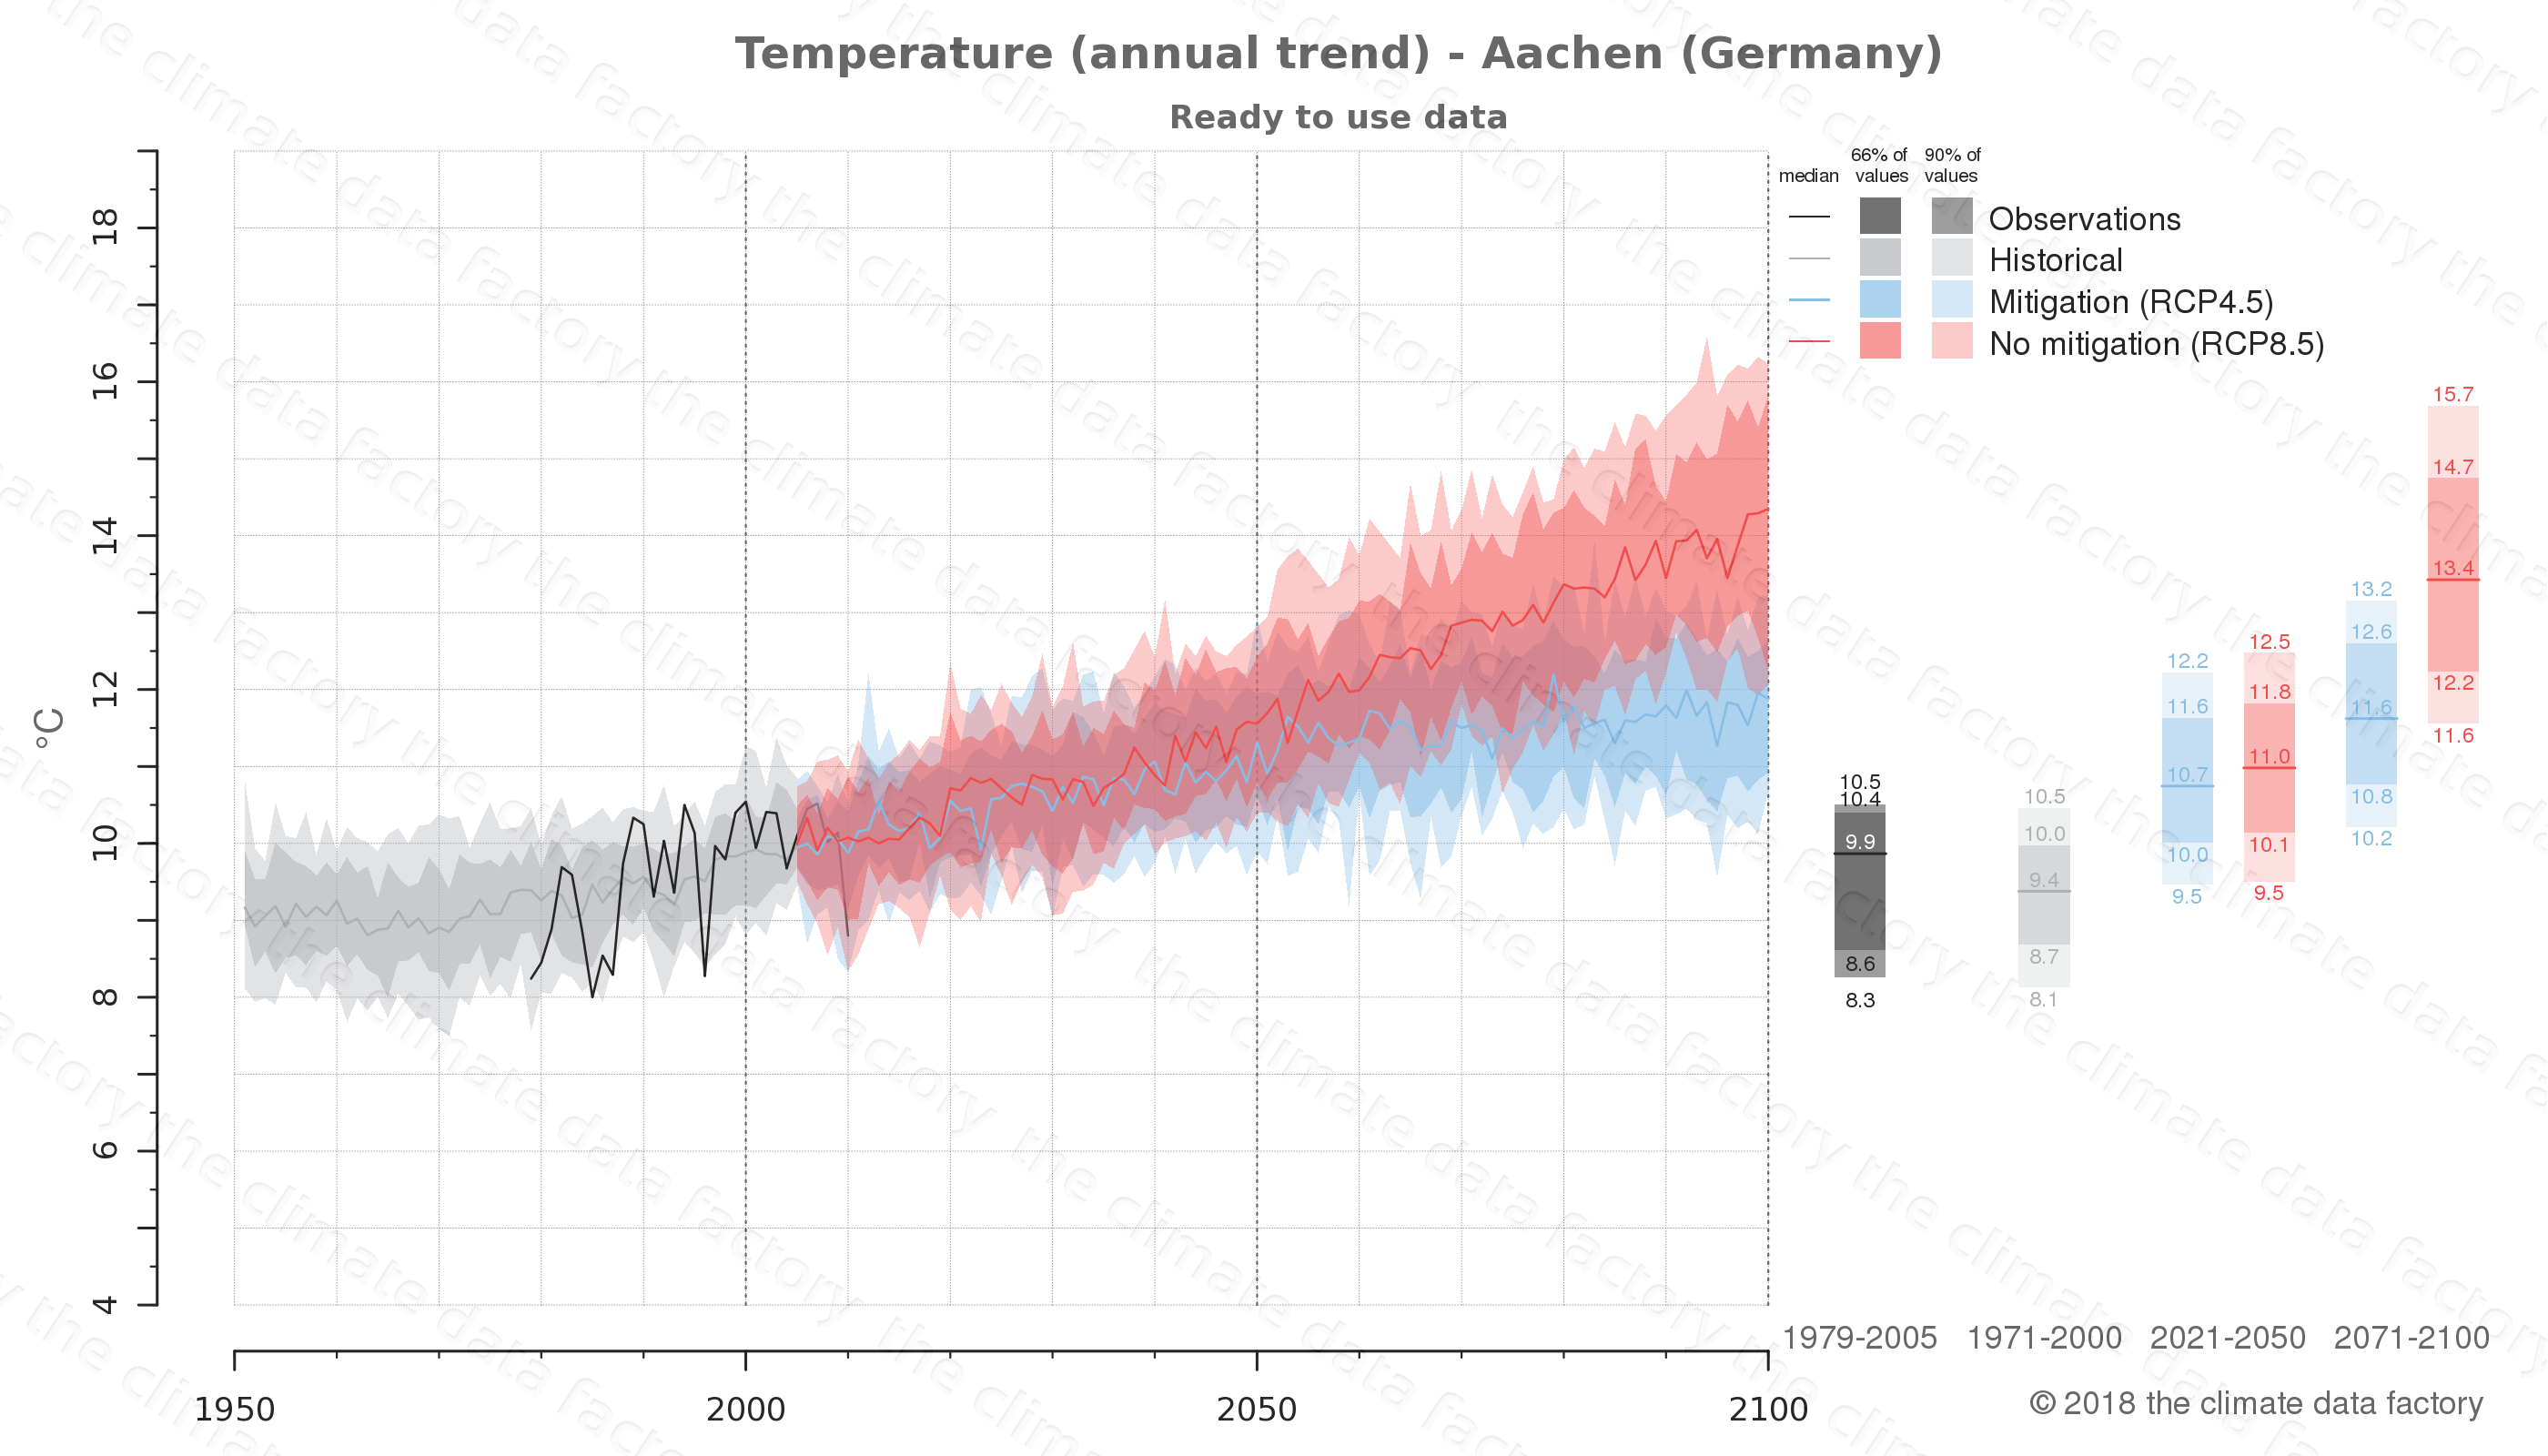 climate change data policy adaptation climate graph city data temperature aachen germany